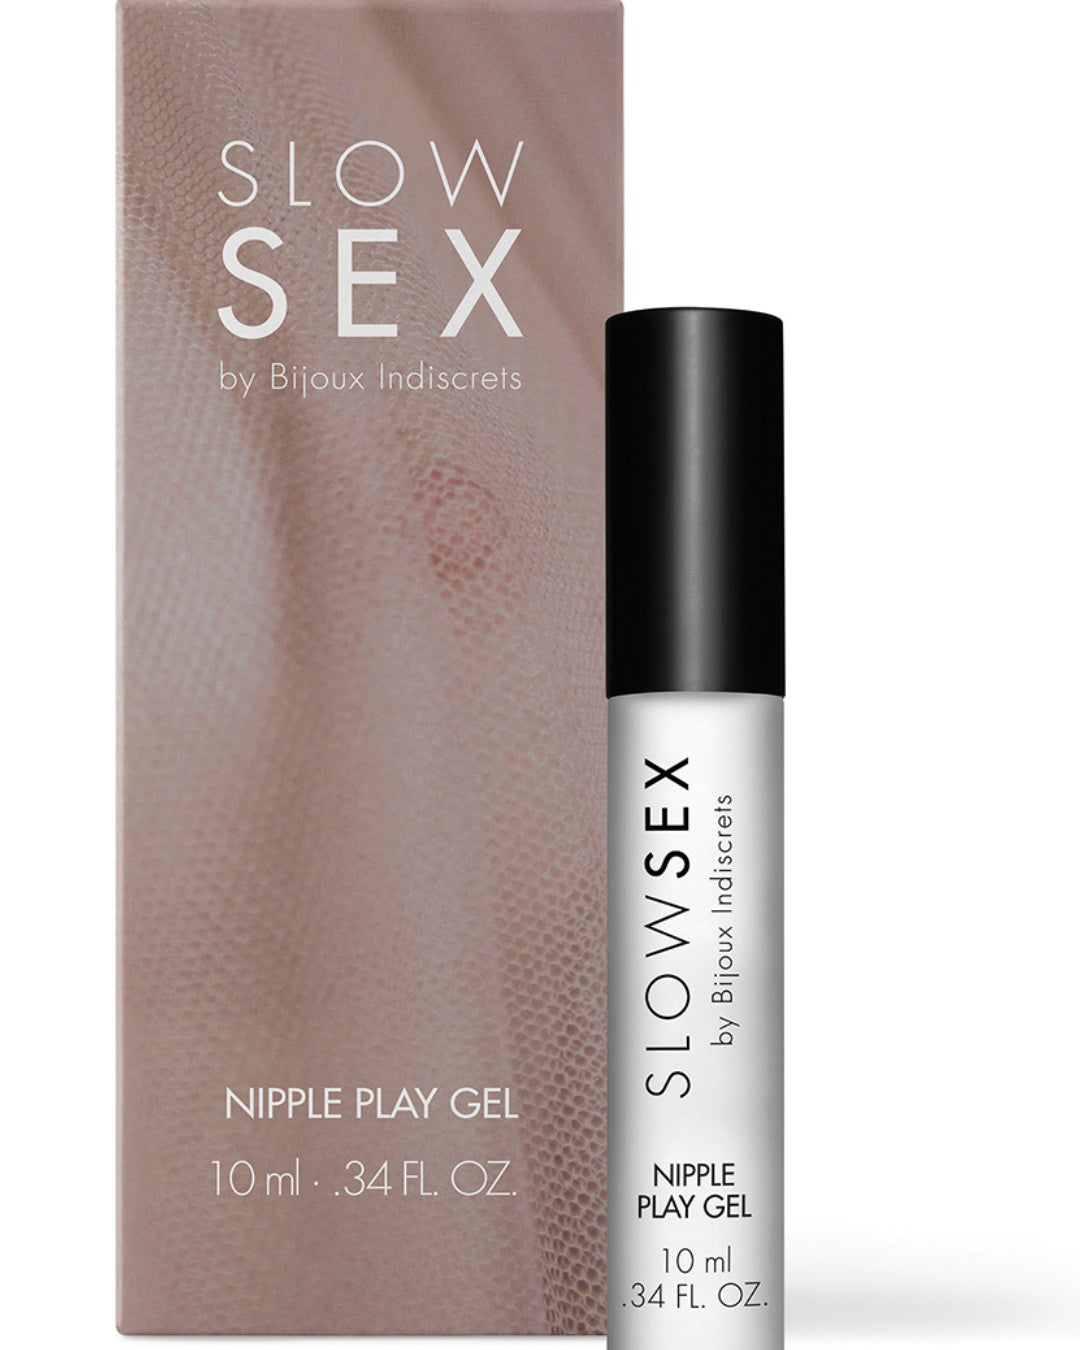 Bijoux Indiscrets Slow Sex Nipple Play Gel product and box